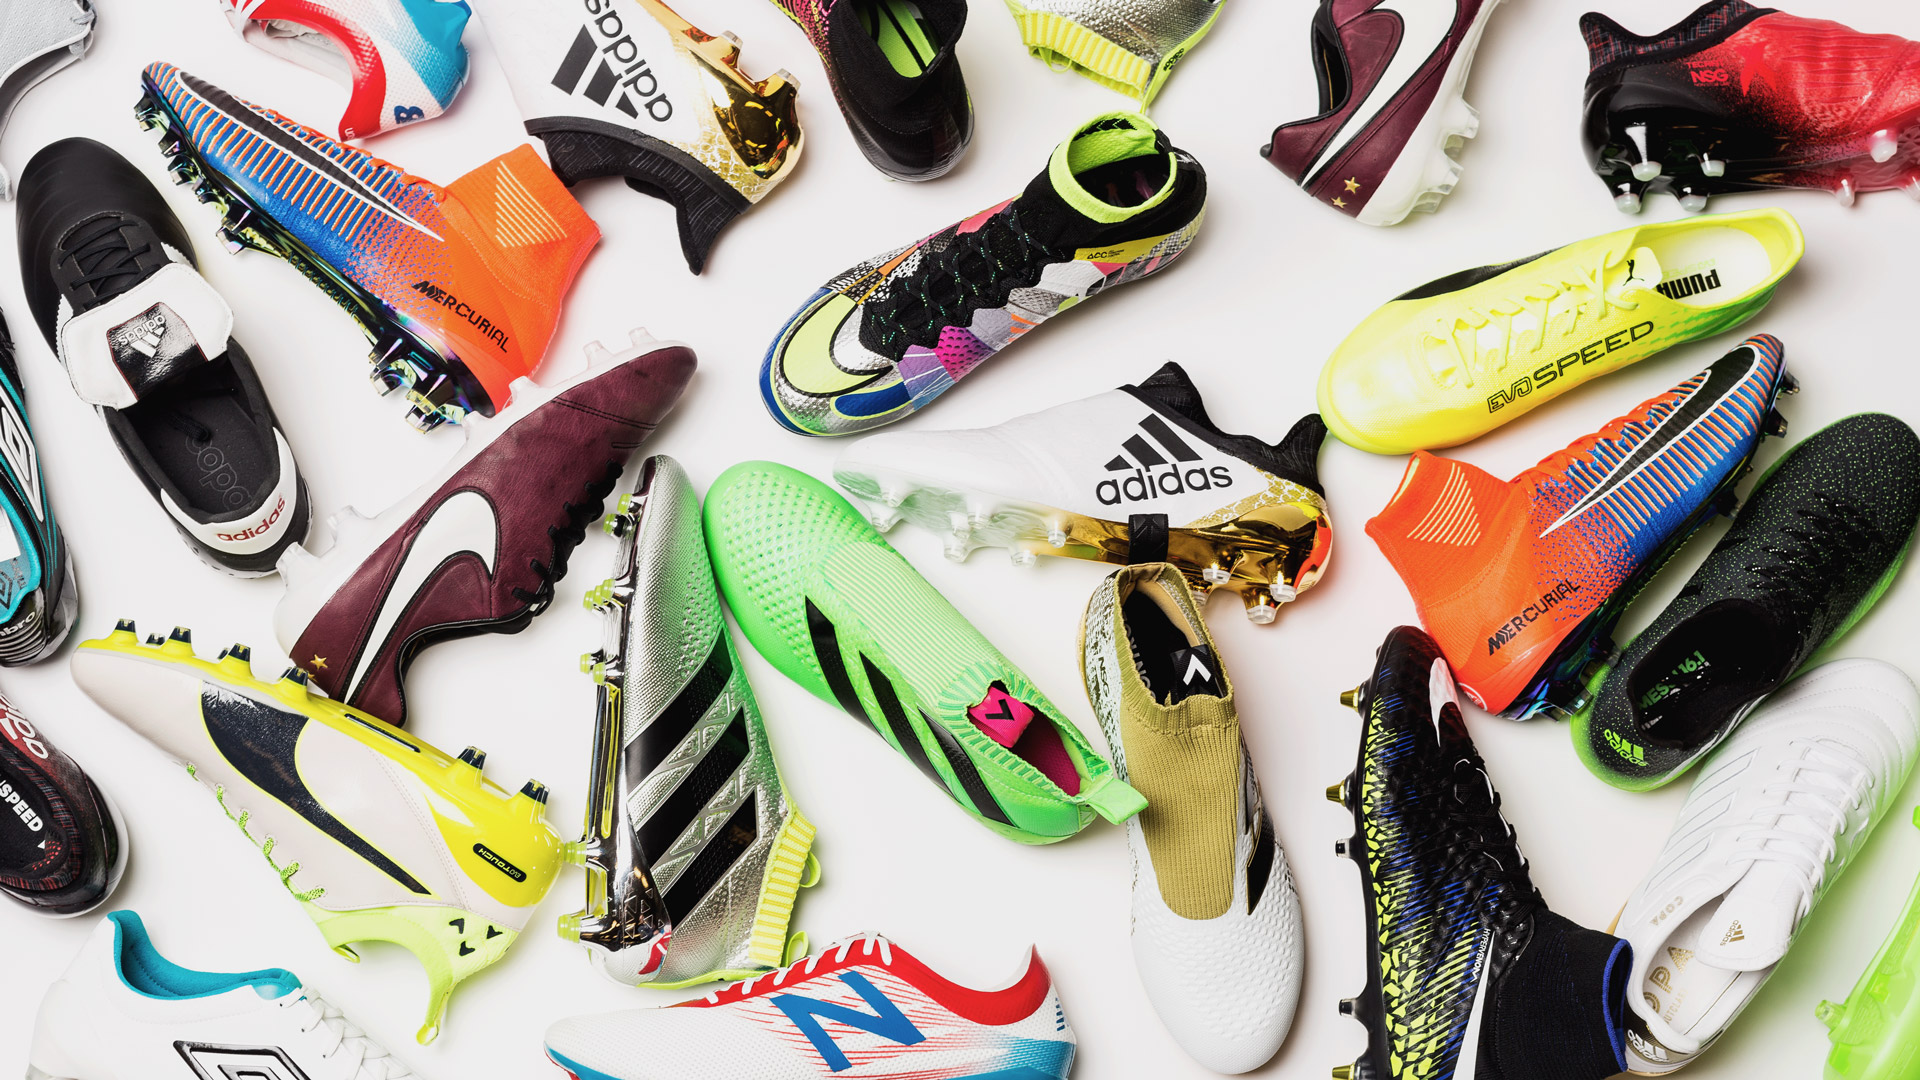 The 10 best/sickest football boots of 2016